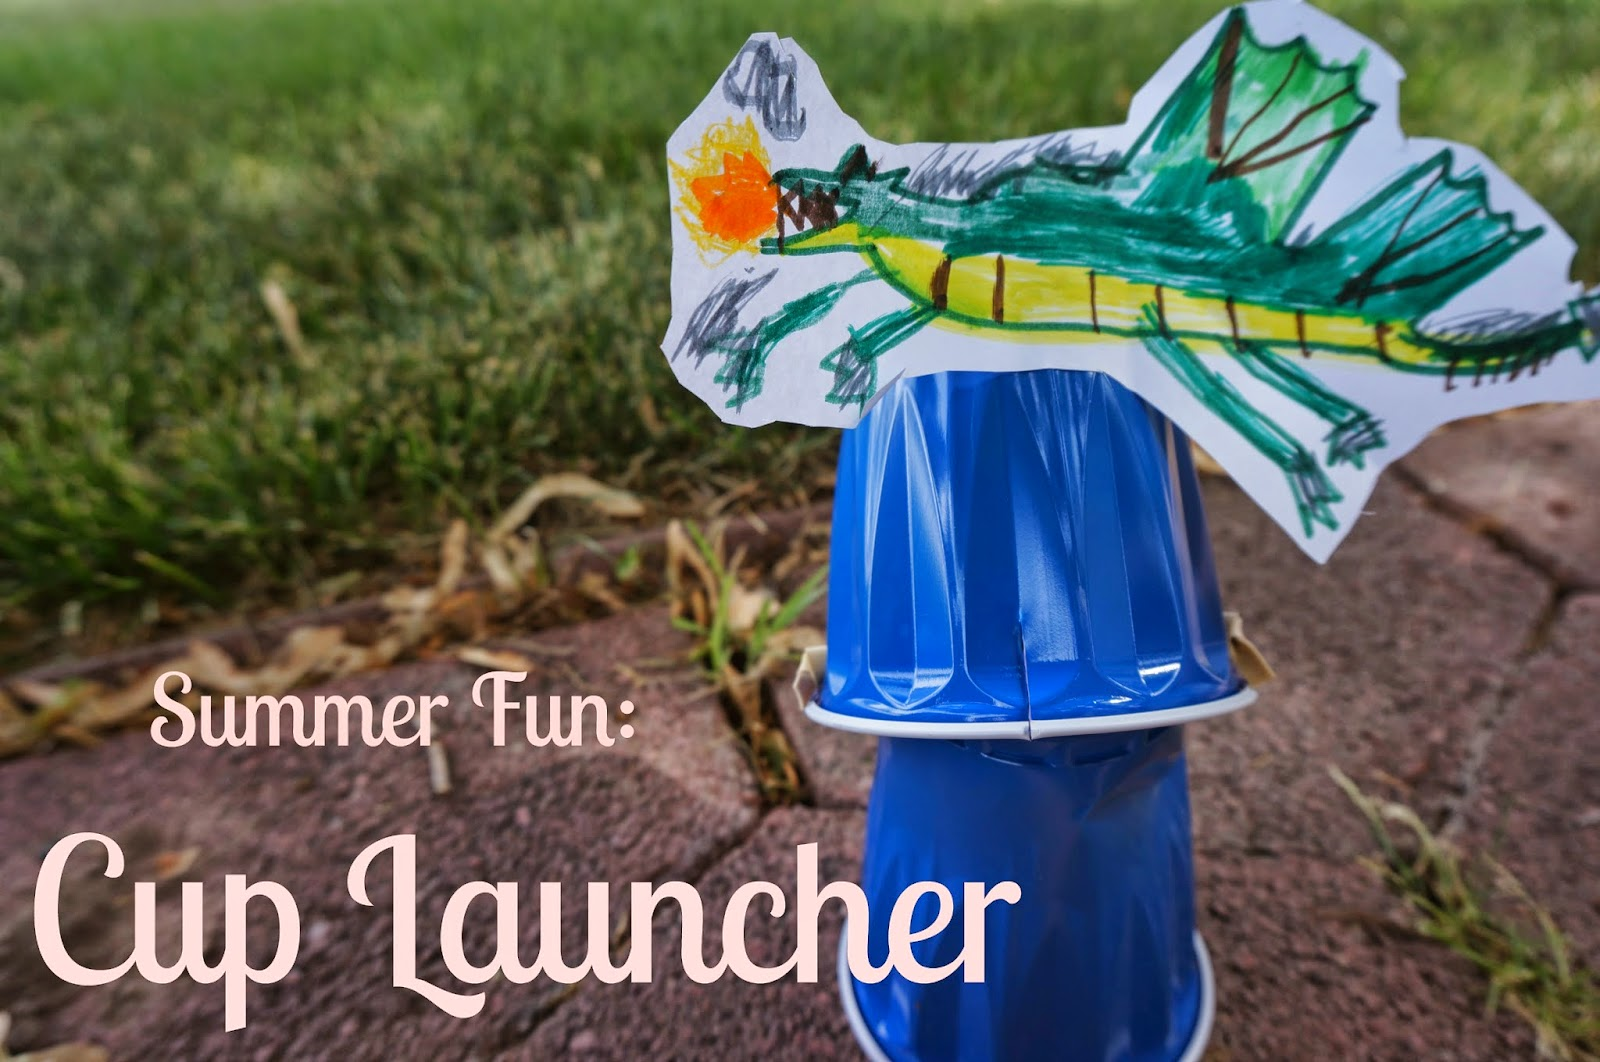 http://sunlitpages.blogspot.com/2014/06/summer-fun-cup-launchers.html